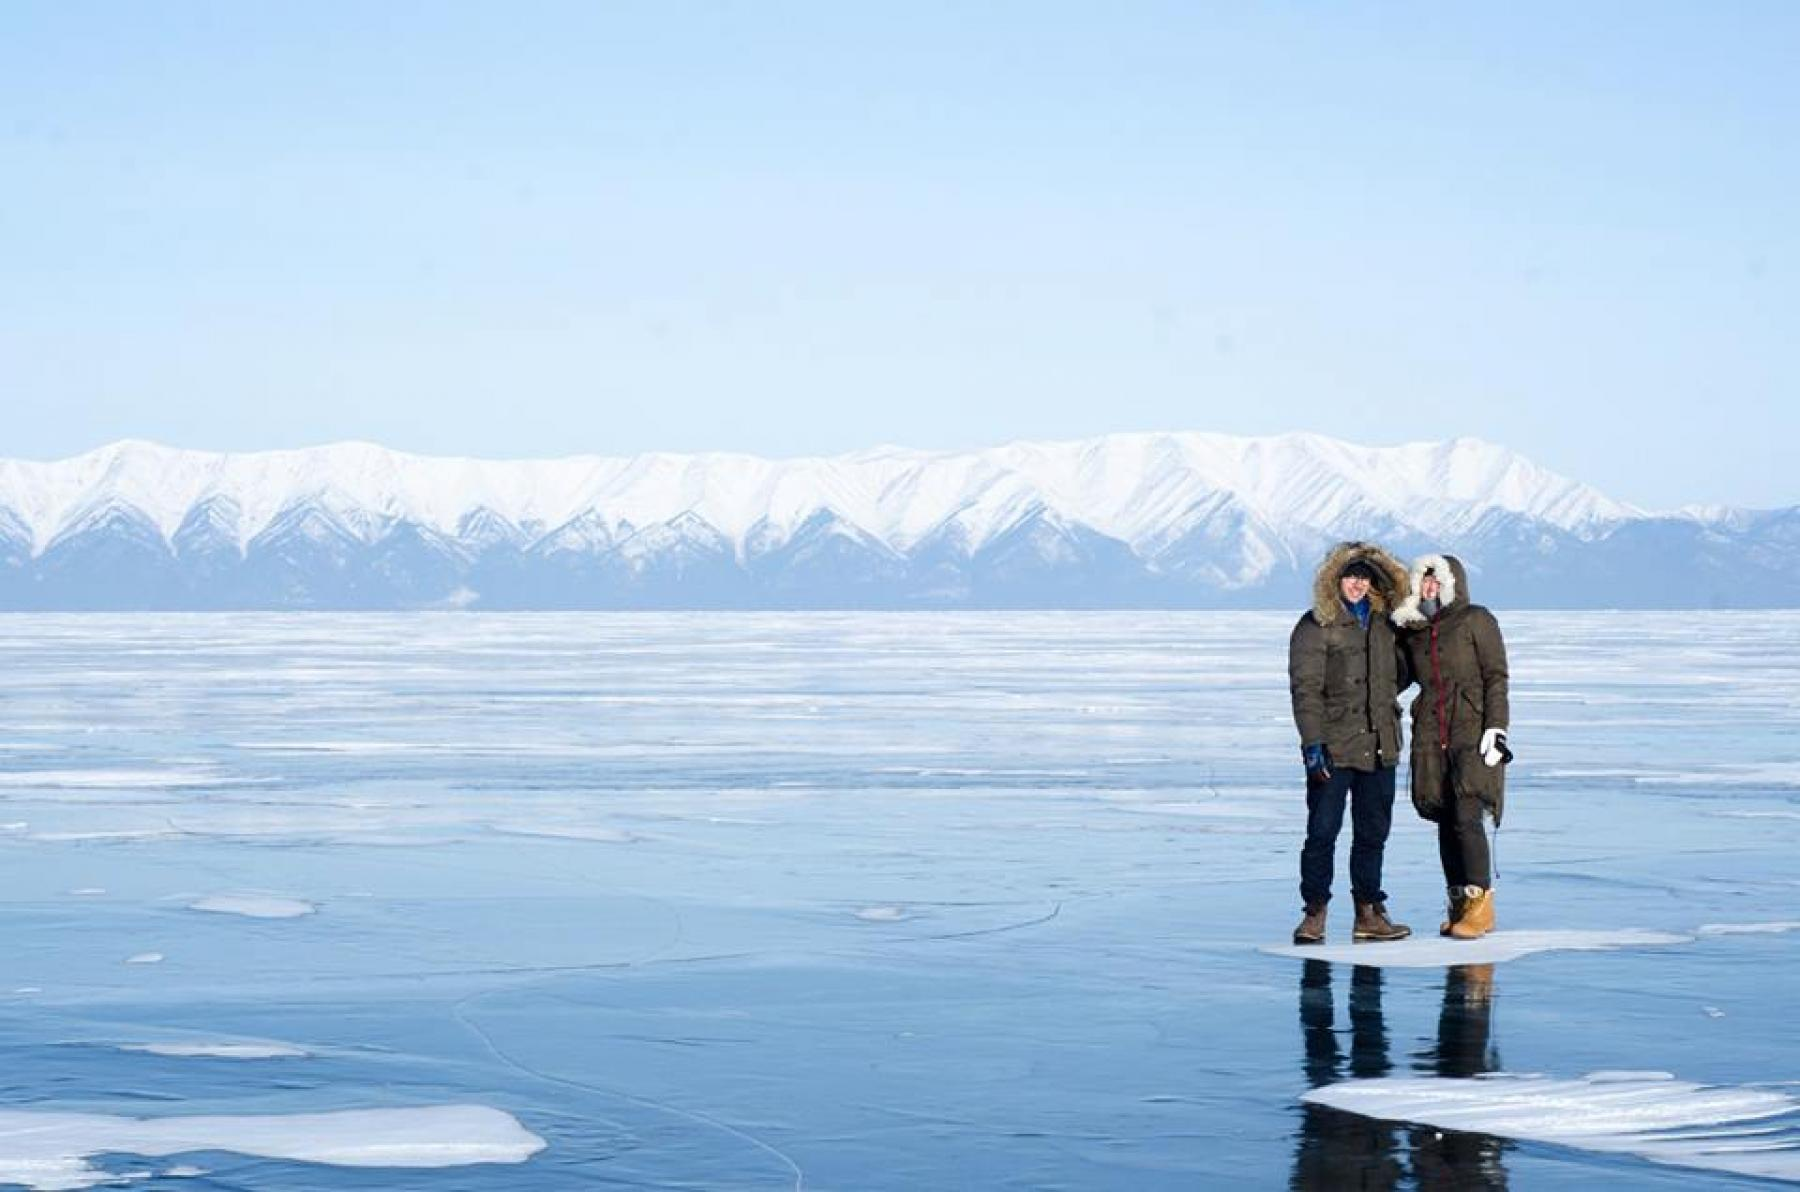 Frozen Magic of Siberia - Amazing Lake Baikal starting at Olkhon Island, Irkutsk Oblast, Russia